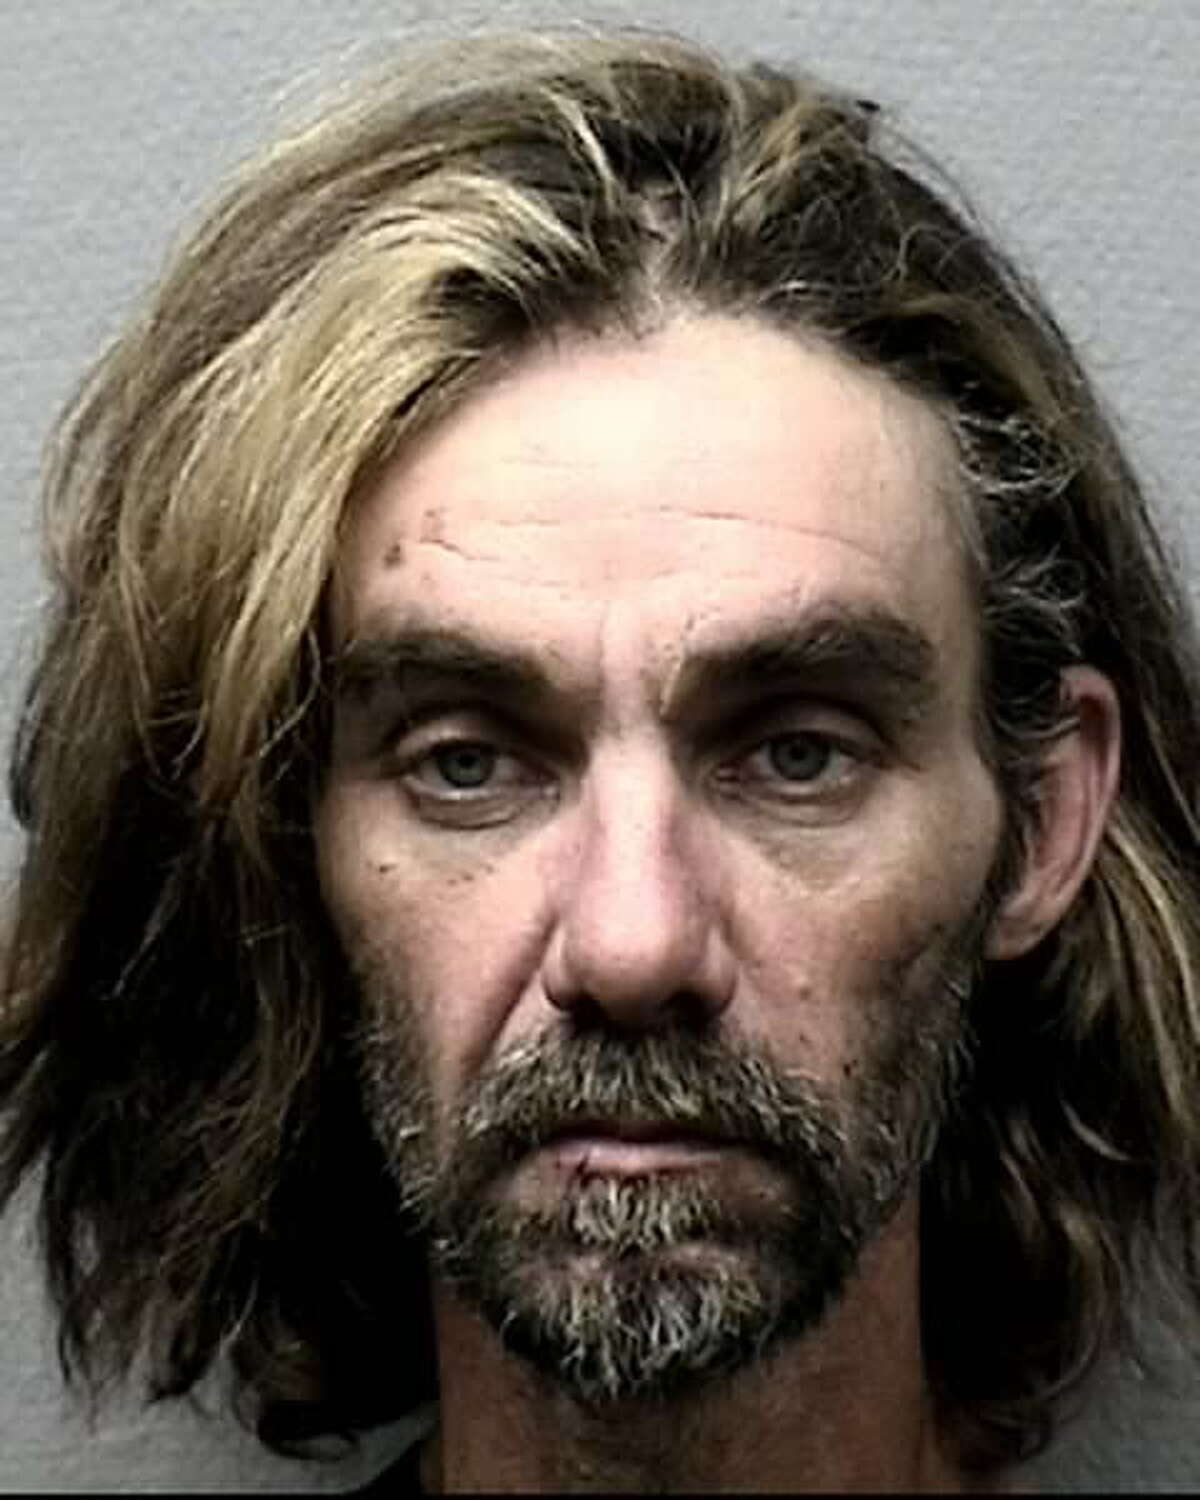 Robert Woodard was arrested in September of 2016 on a third charge of driving while intoxicated.